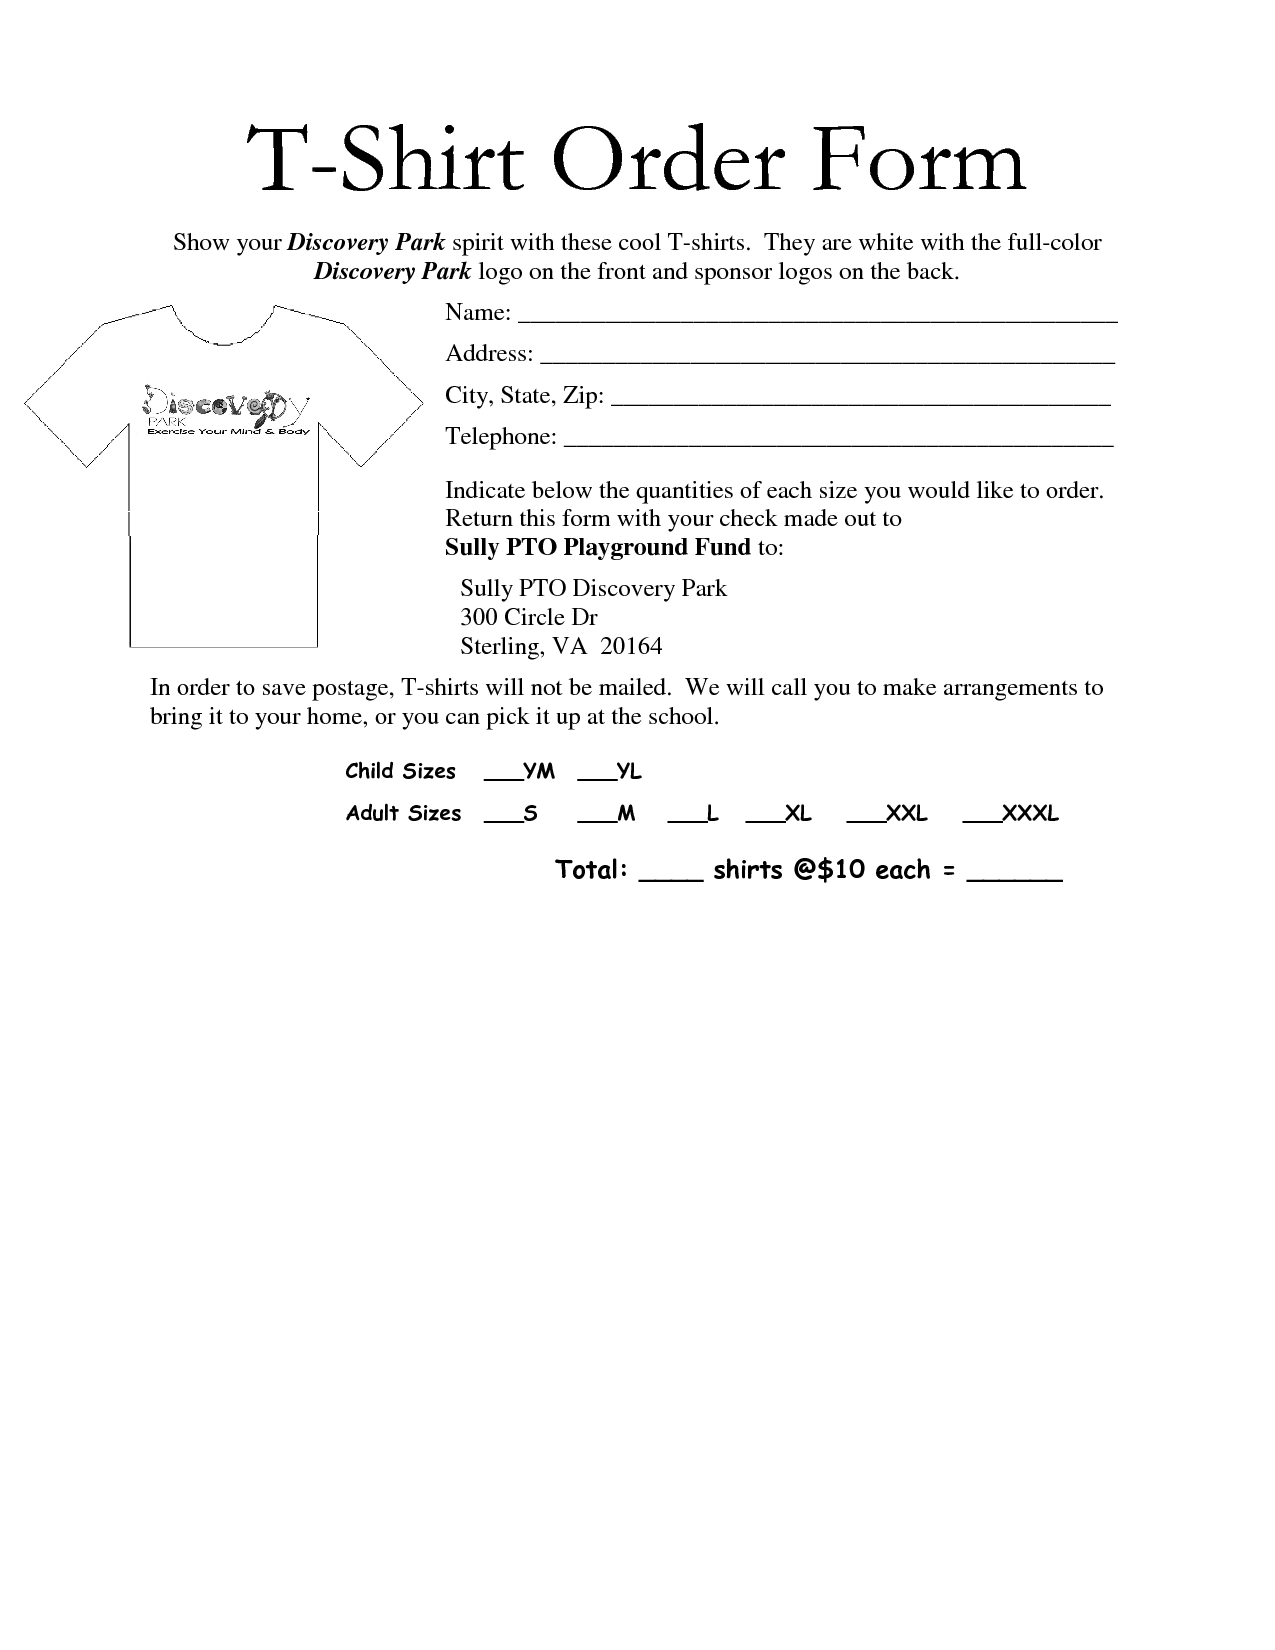 Cheerleading Donation Letter Template - 35 Awesome T Shirt order form Template Free Images